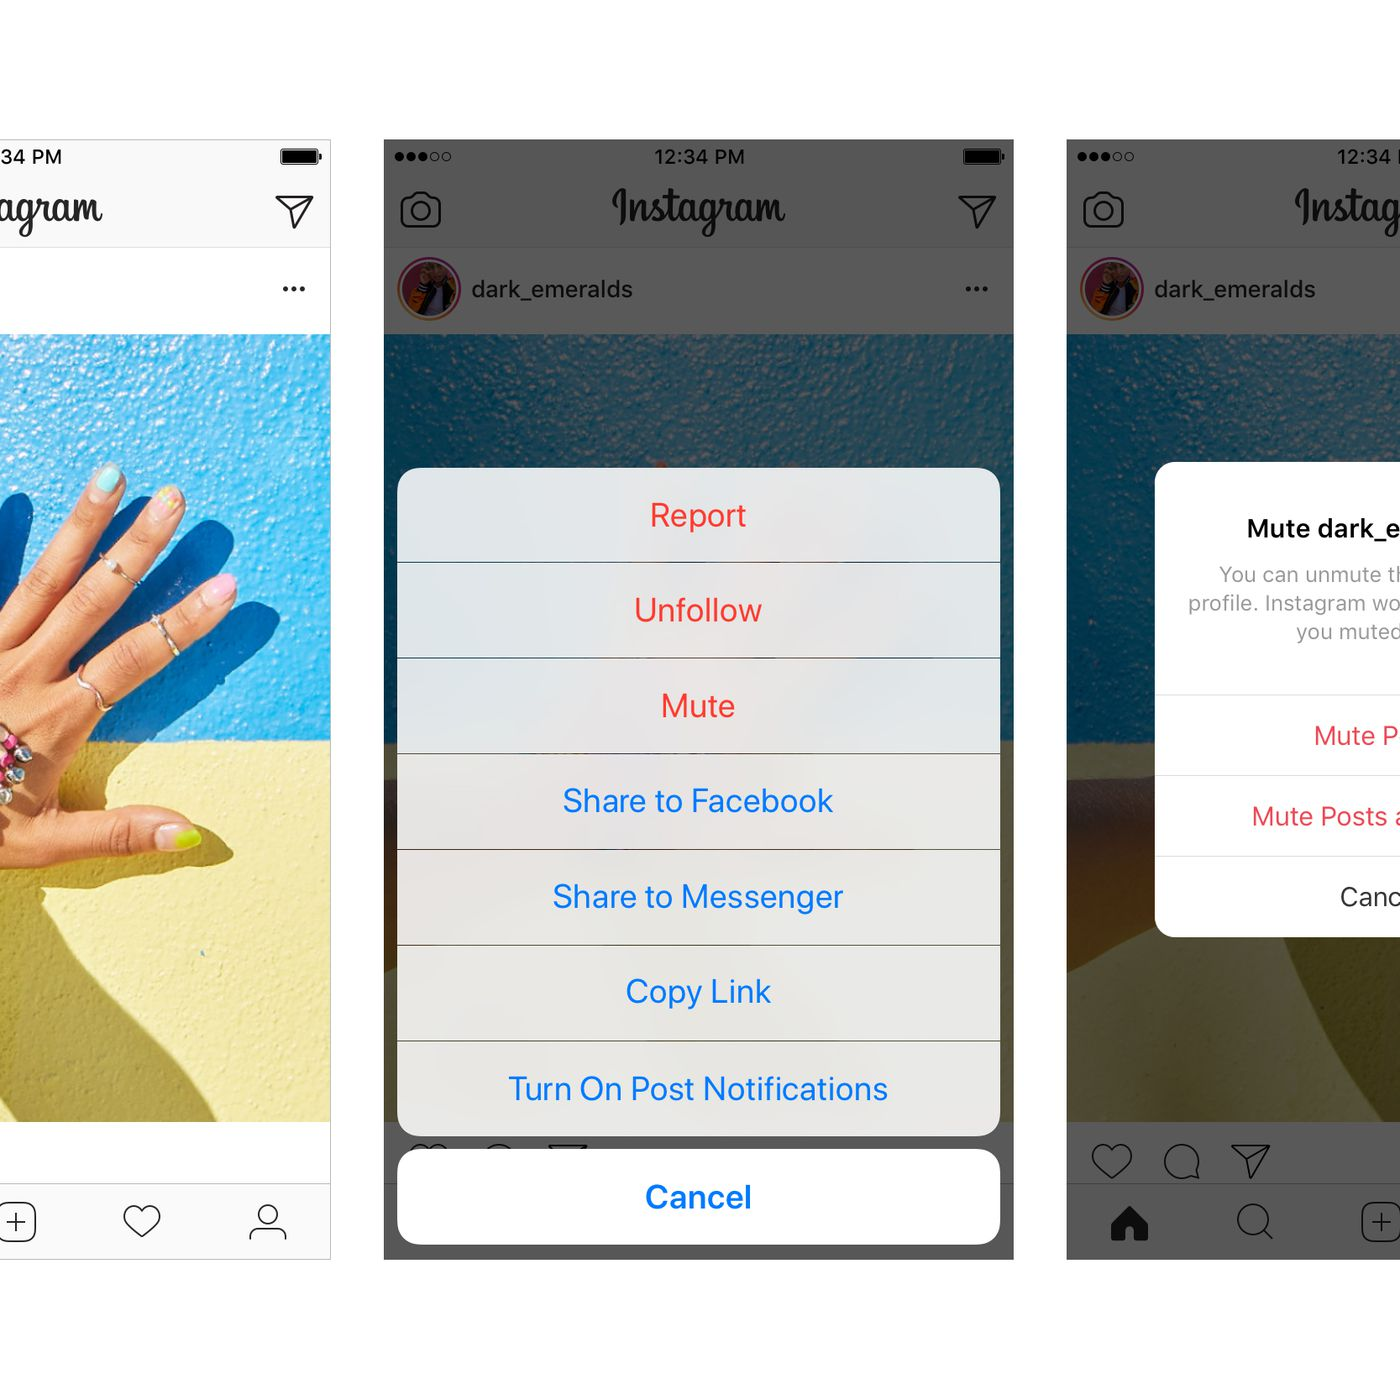 Instagram now lets you mute your friends - The Verge